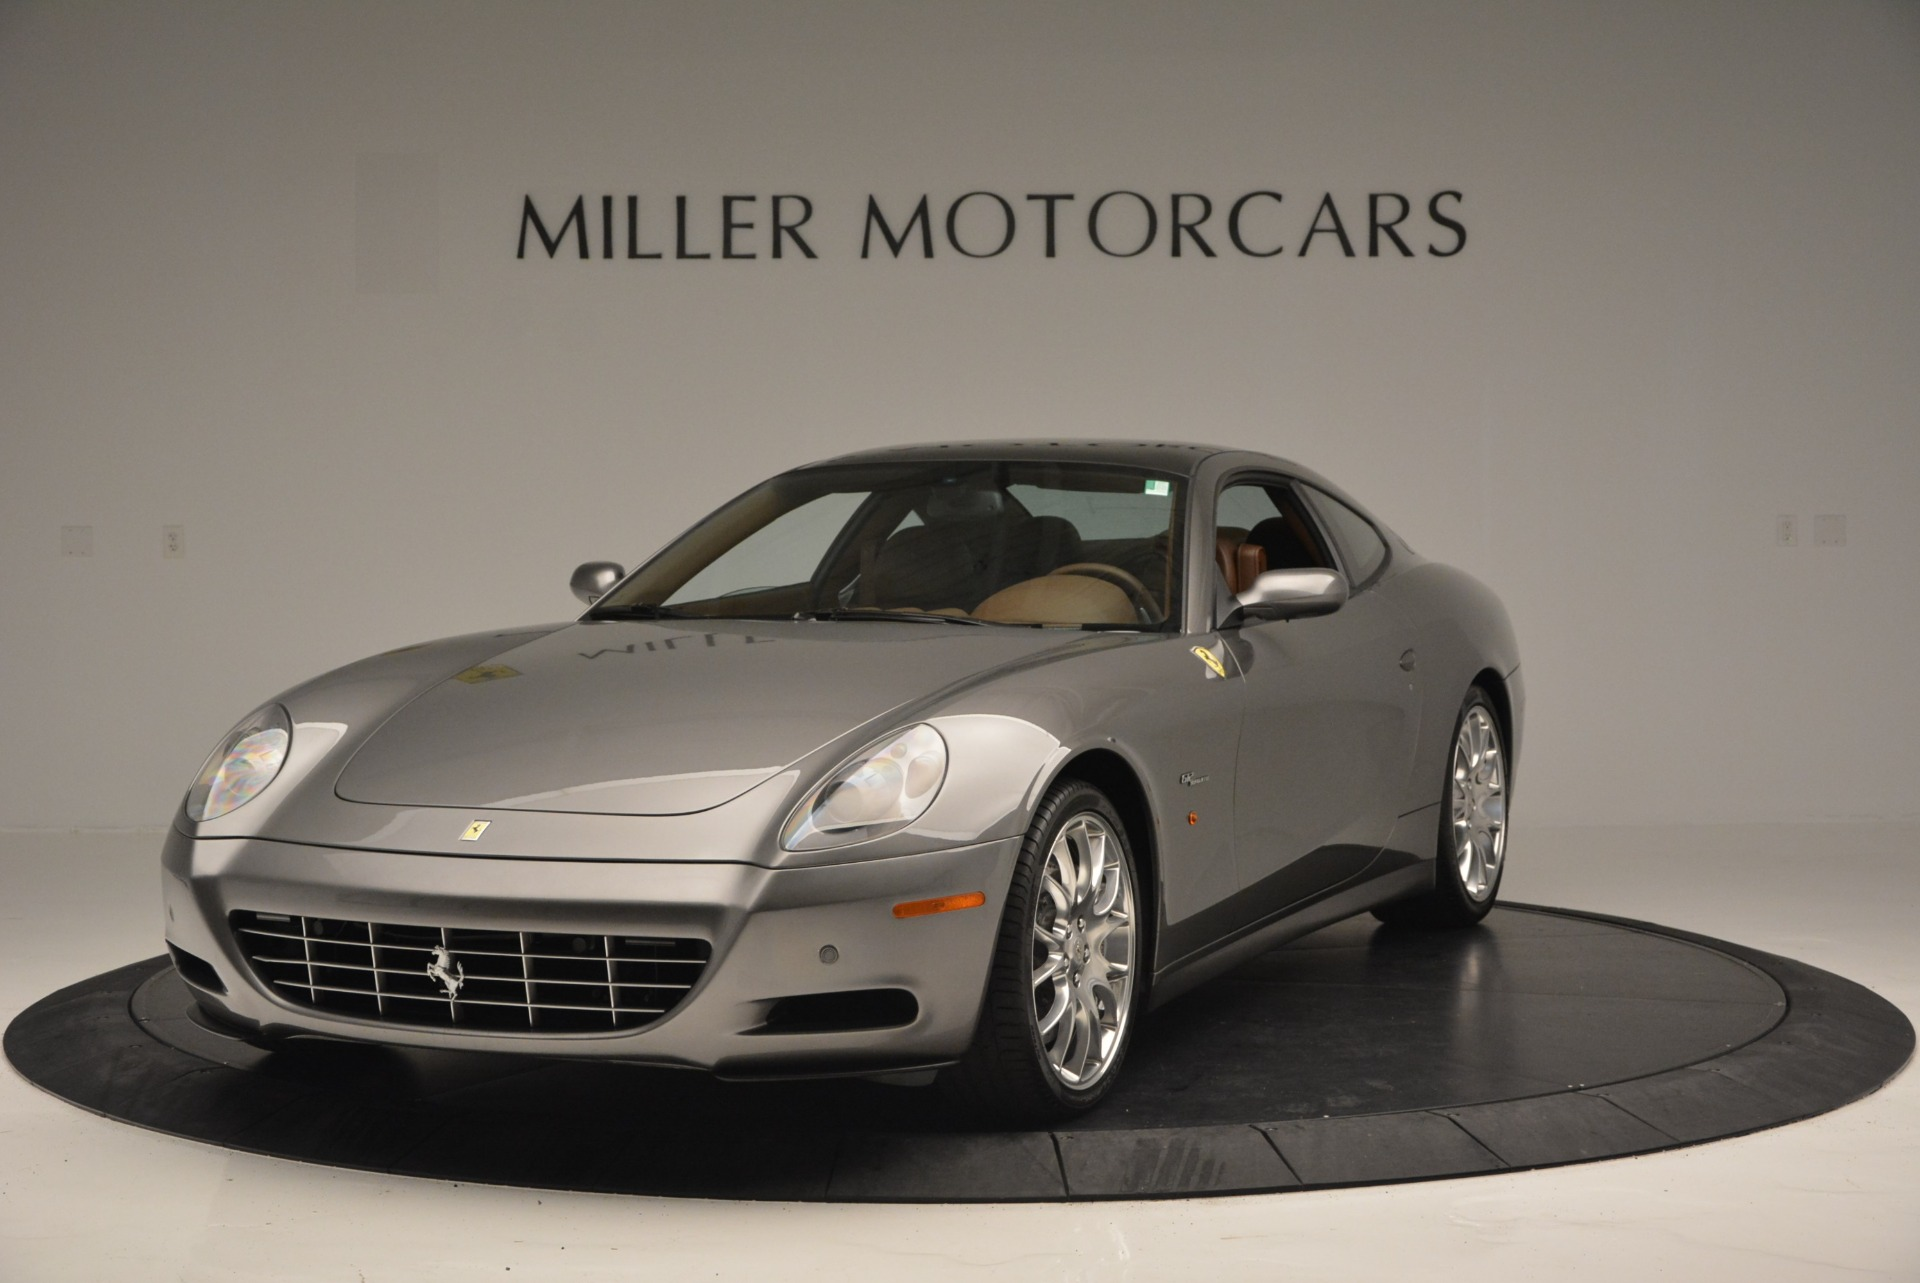 Used 2009 Ferrari 612 Scaglietti OTO for sale Sold at McLaren Greenwich in Greenwich CT 06830 1